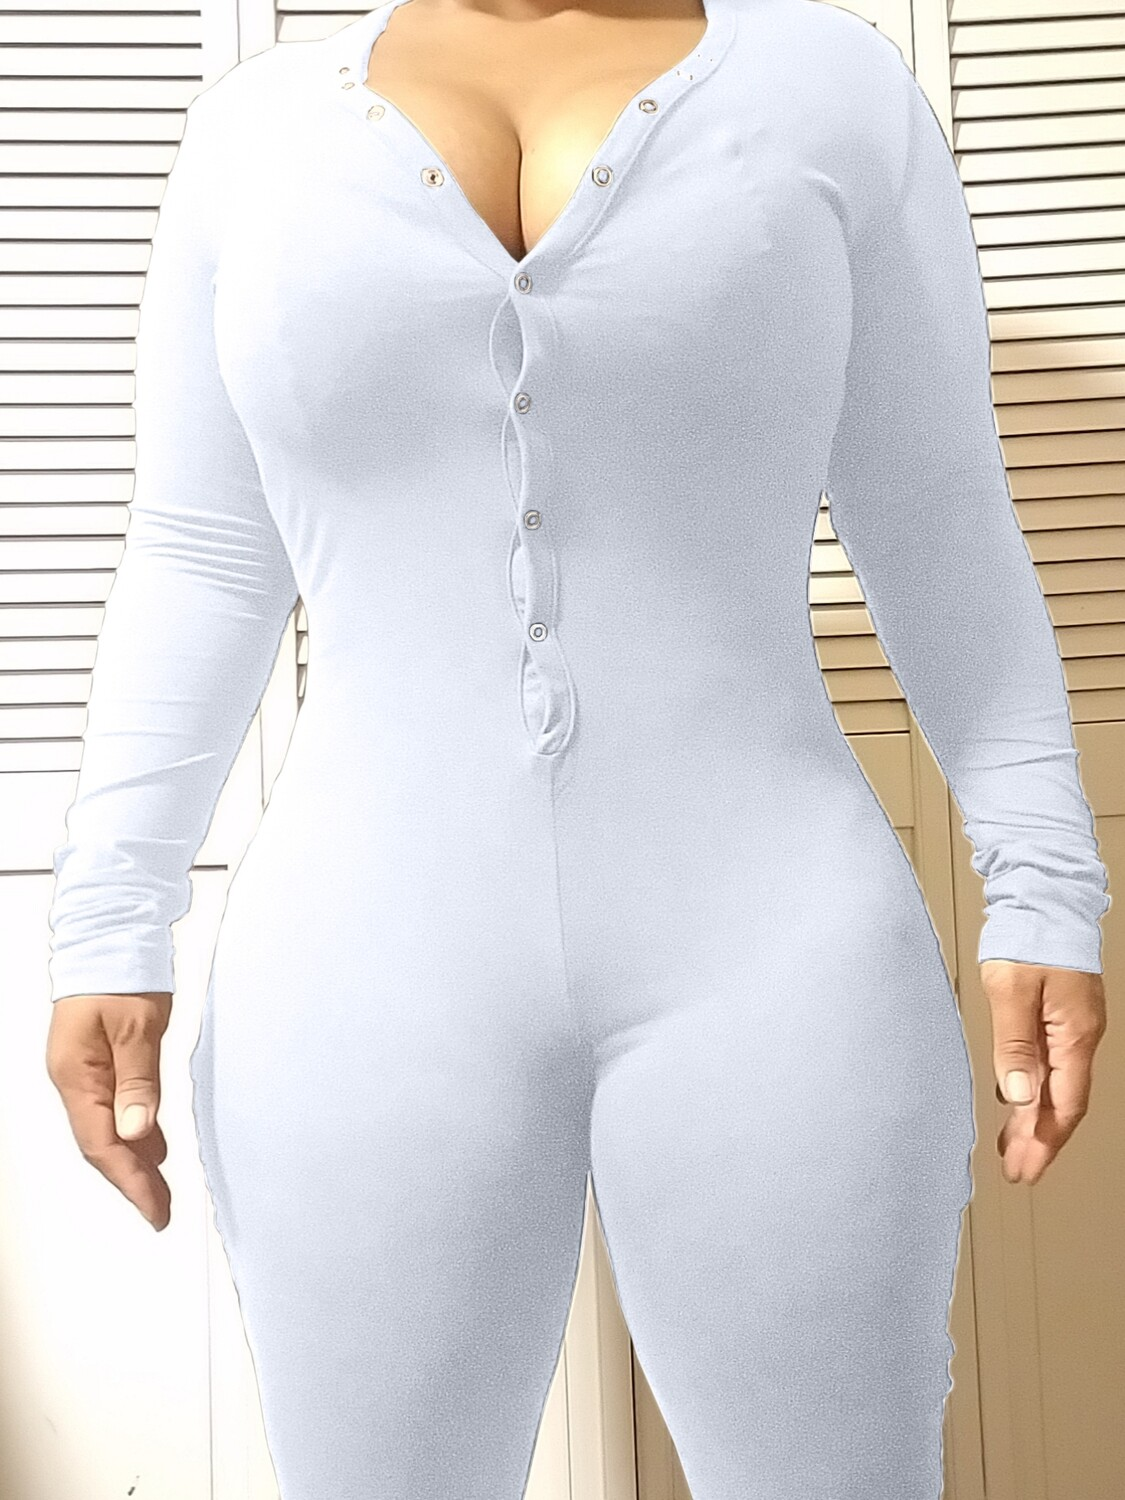 Women's Long Sleeve Shorts Playsuit, Casual, Party, Onesie Pajama Wear- PURE COLOR White